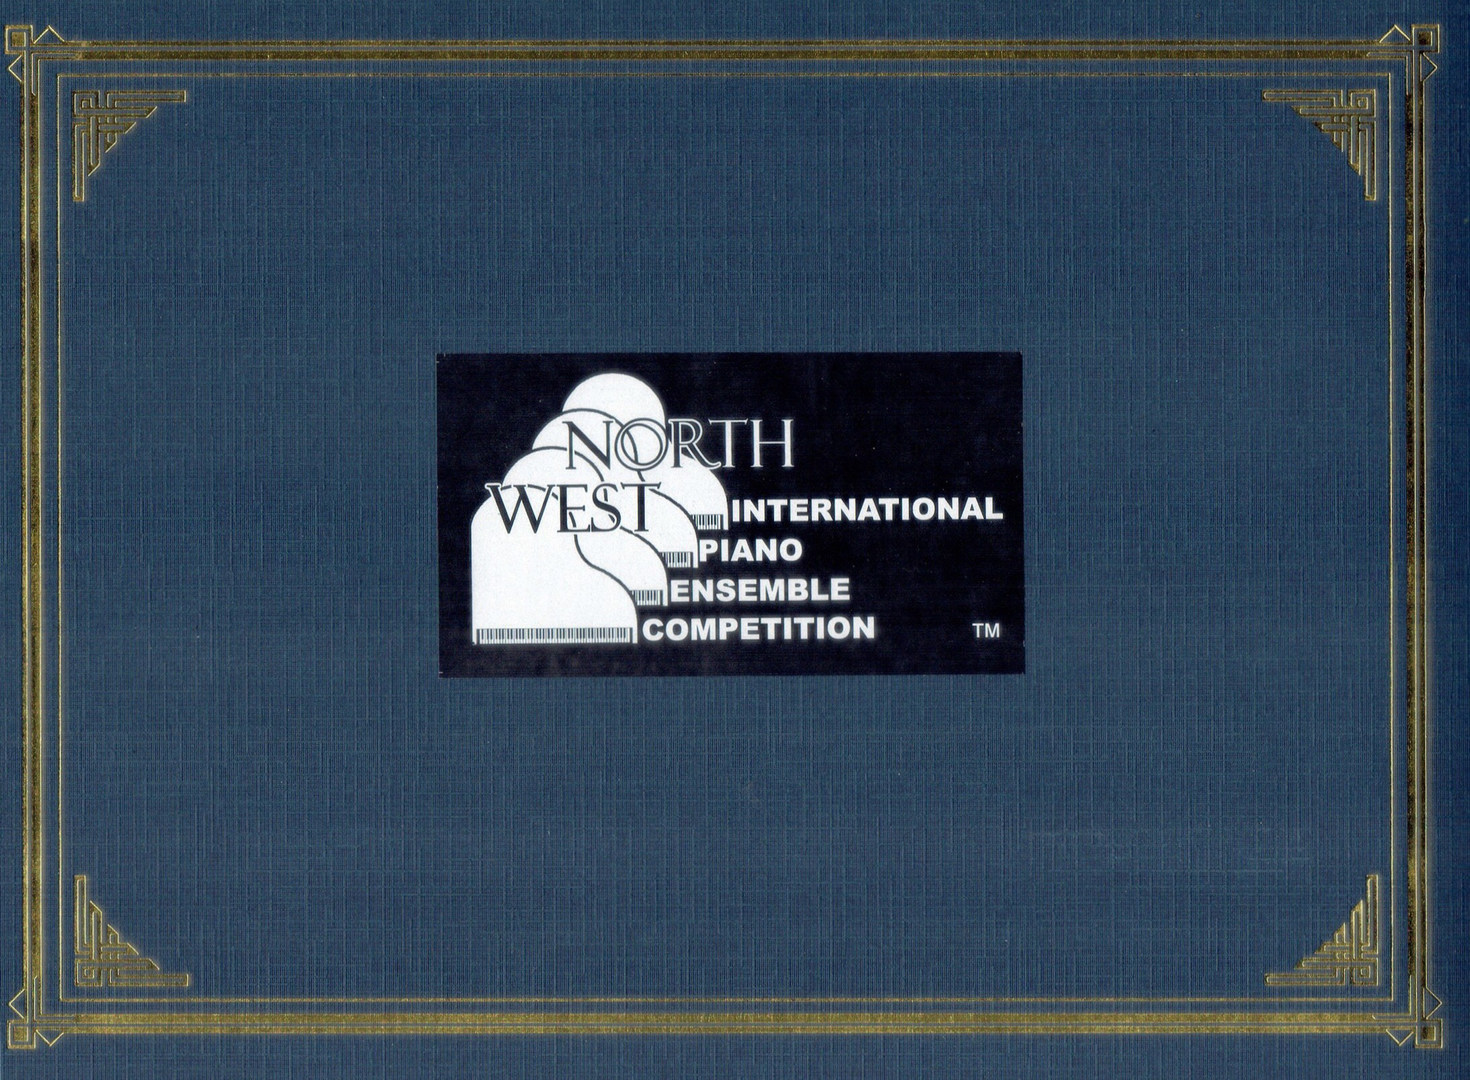 18/11/23-25 (1/3) - 6th North West International Piano Ensemble Competition